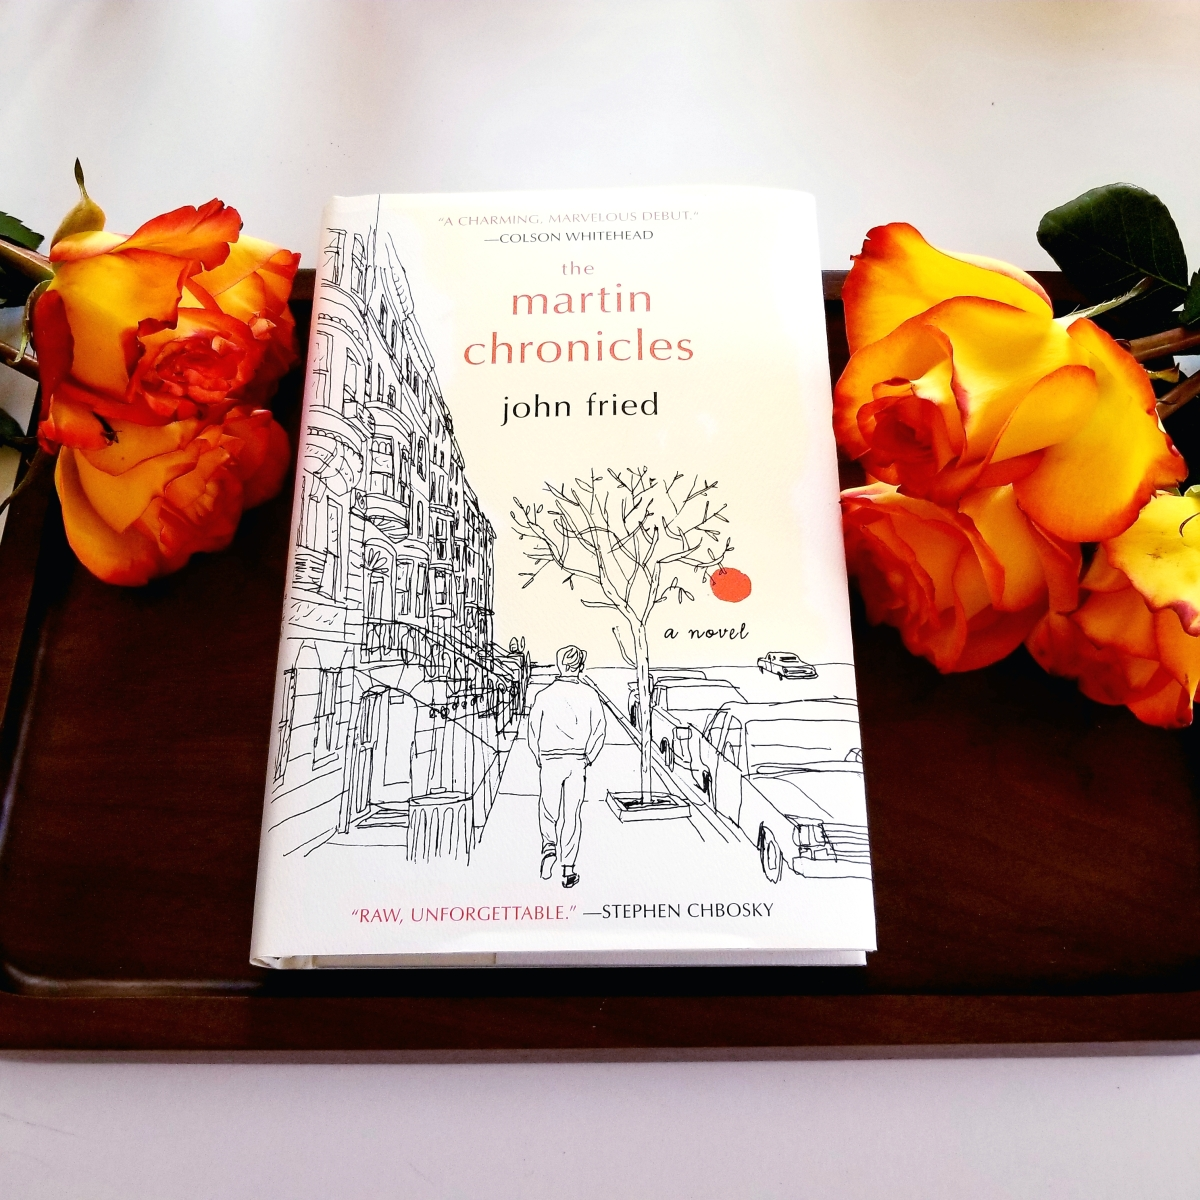 The Martin Chronicles by John Fried #bookreview #tarheelreader #thrmartinchronicles @fried12 @grandcentralpub #themartinchronicles #bookgiveaway